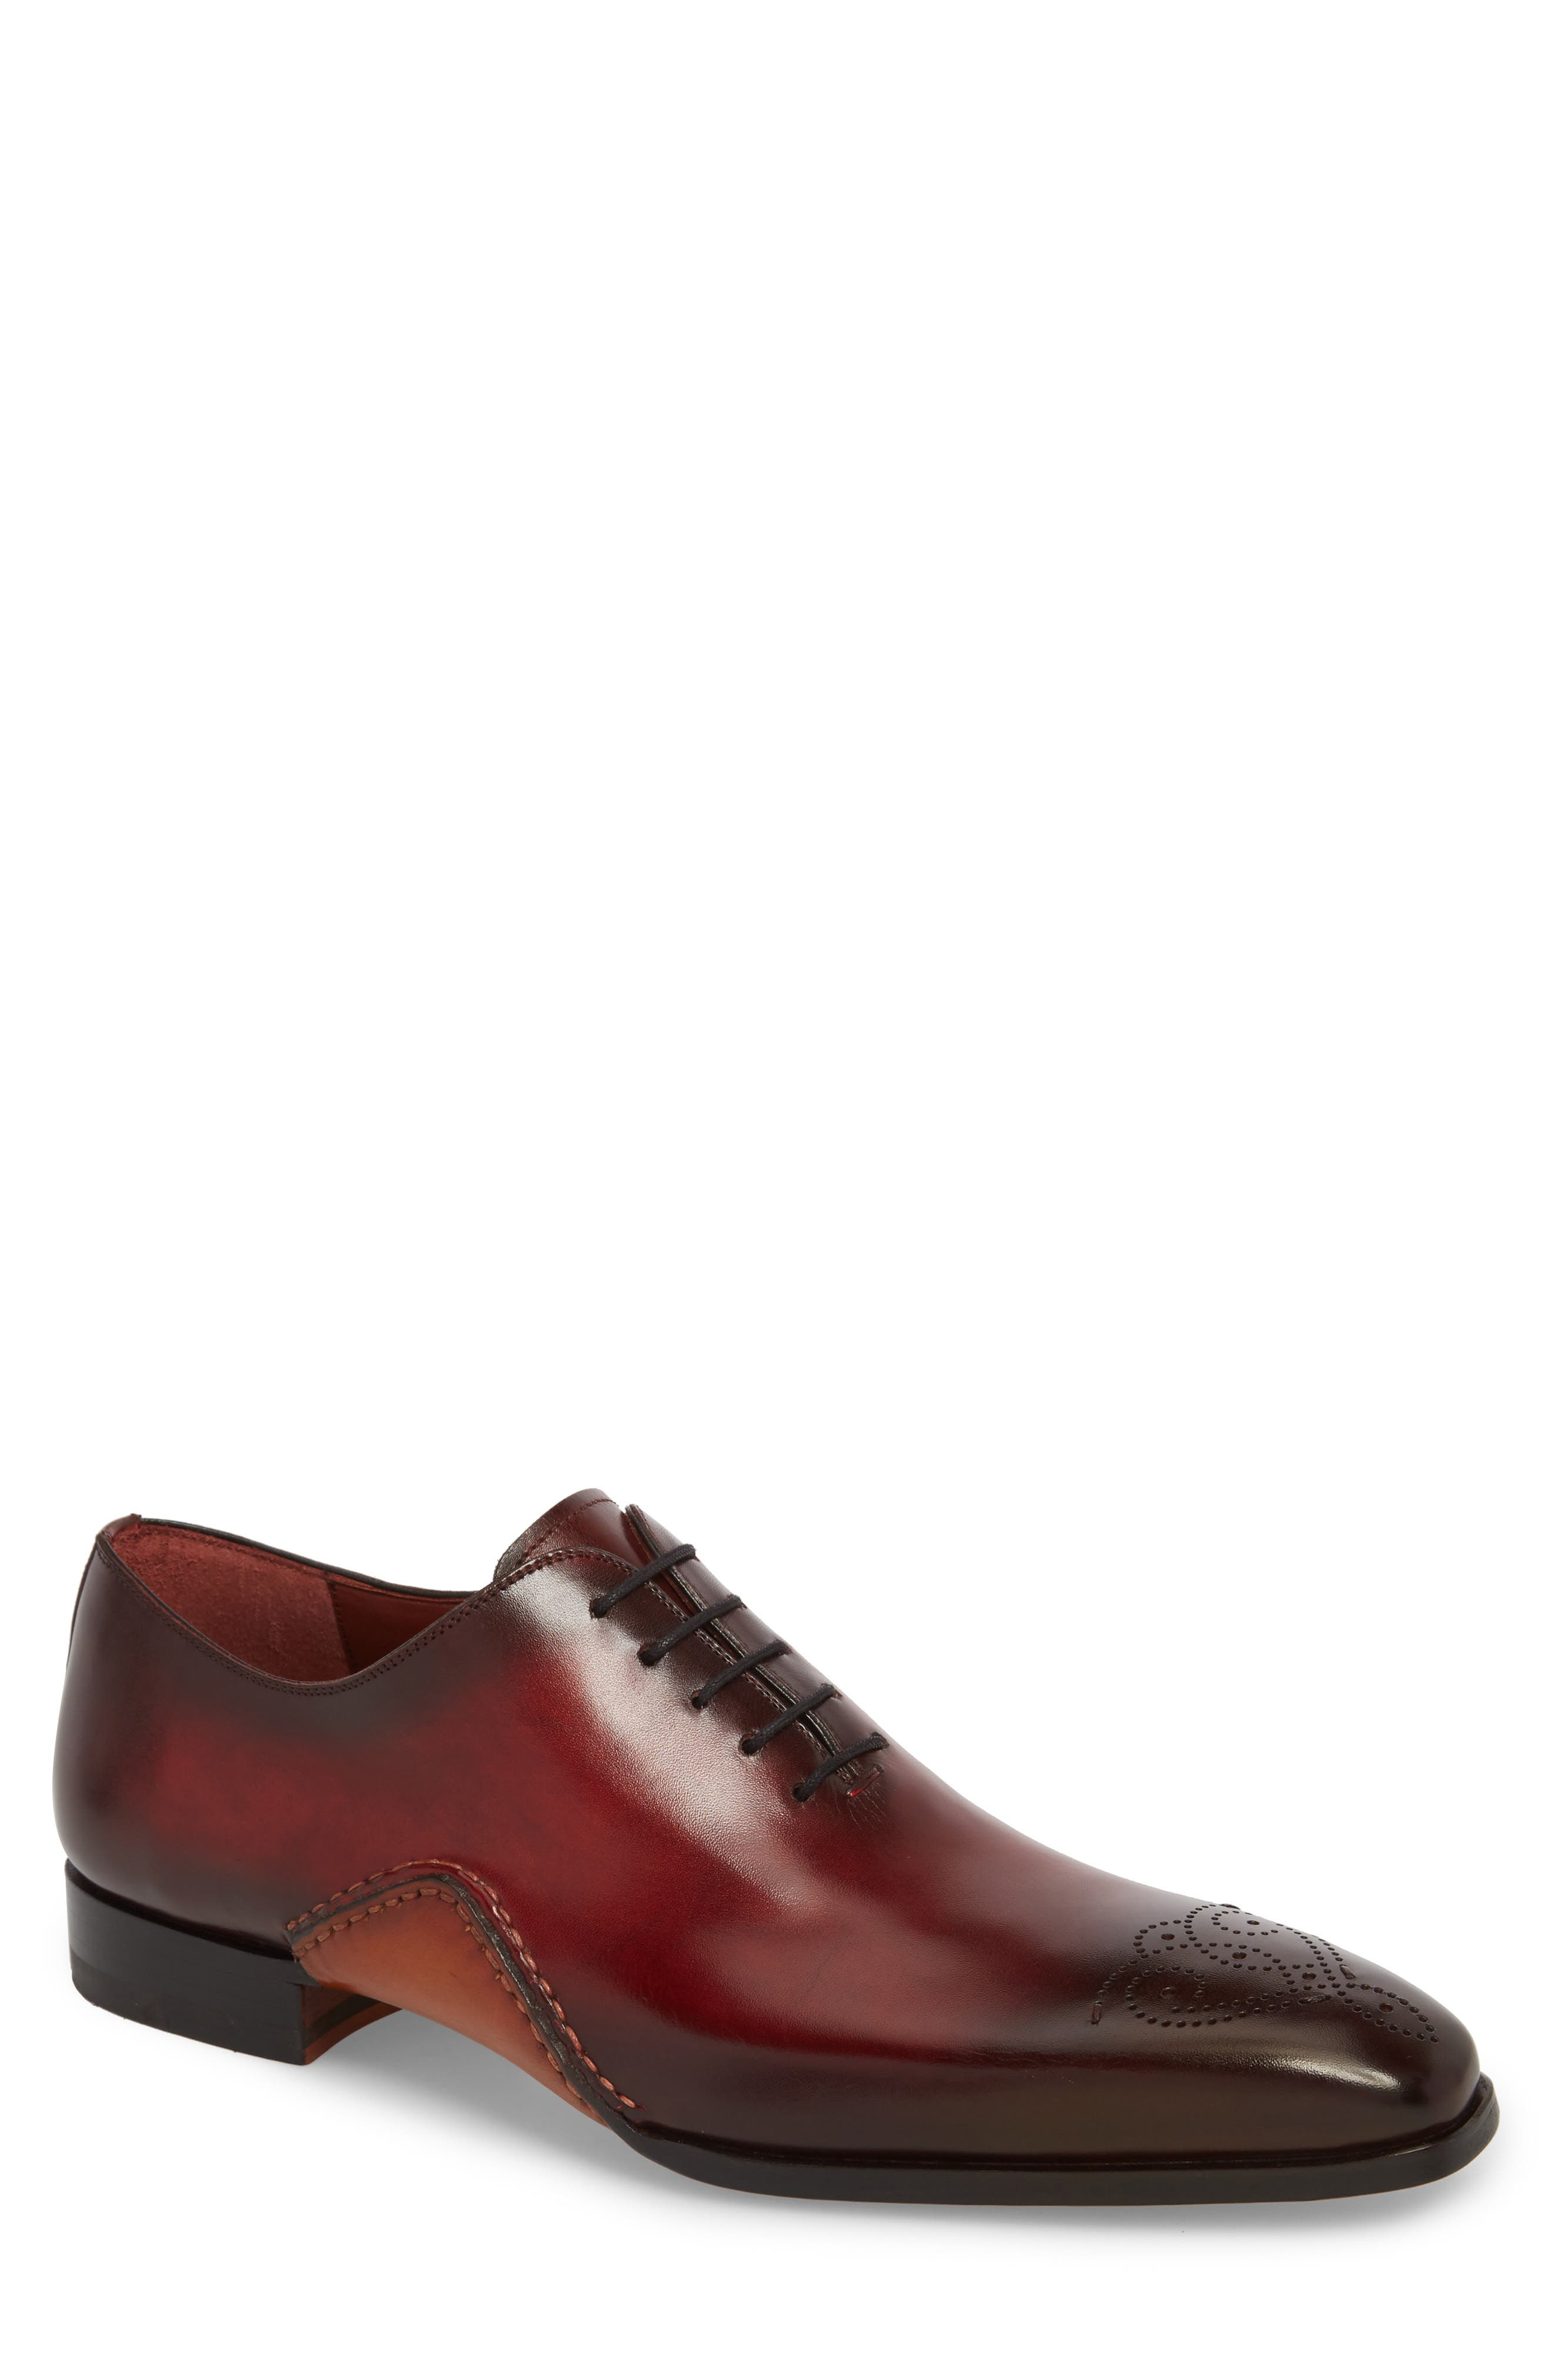 Vada Brogued Whole Cut Shoe,                         Main,                         color, Red Leather